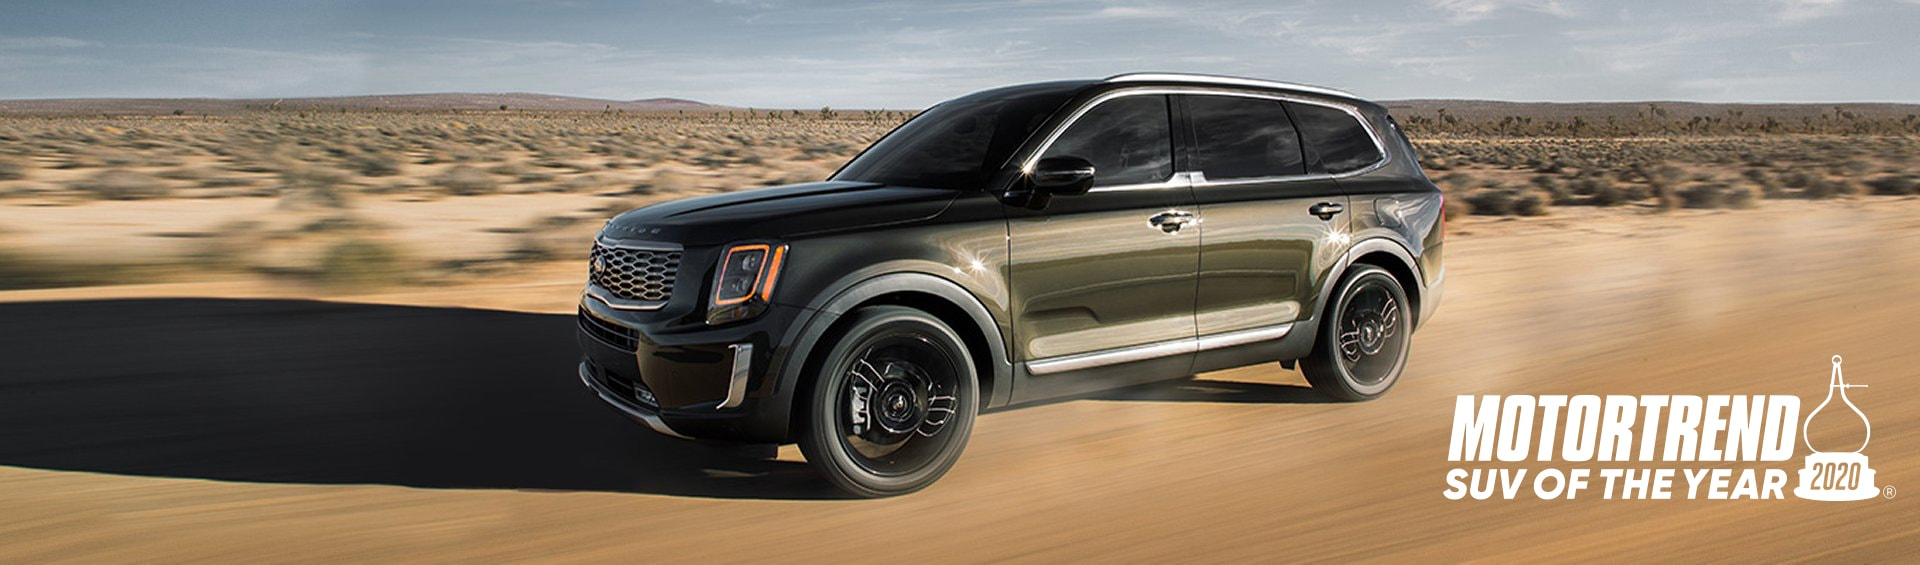 2020 Kia Telluride making it's debut